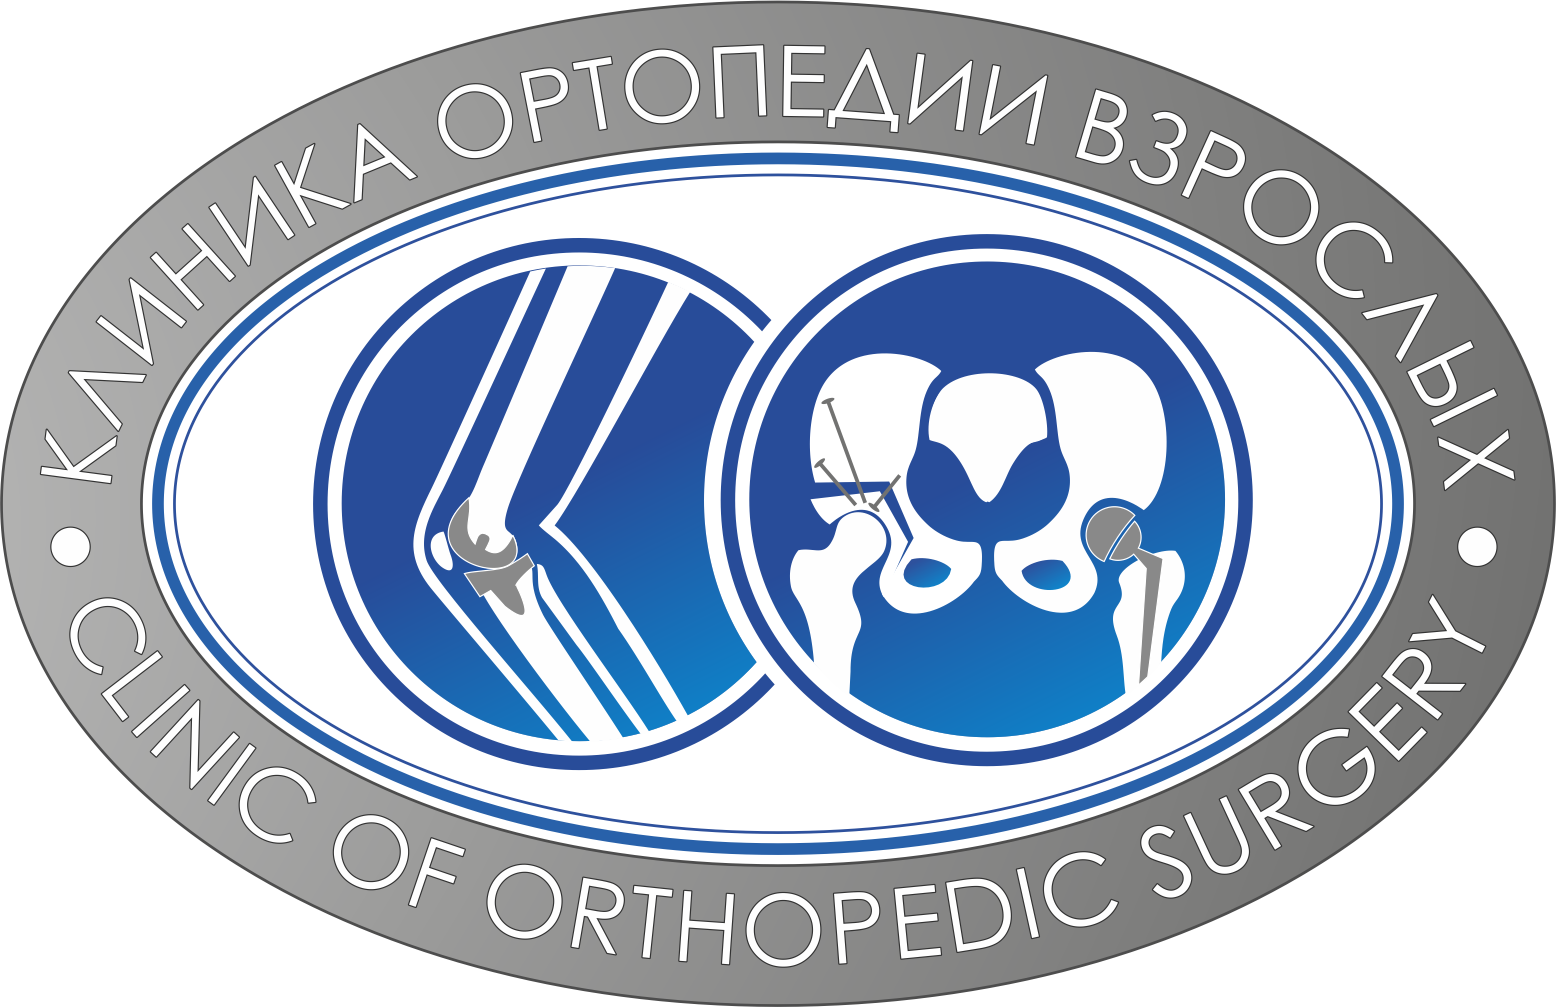 Clinicof Orthopedic Surgery